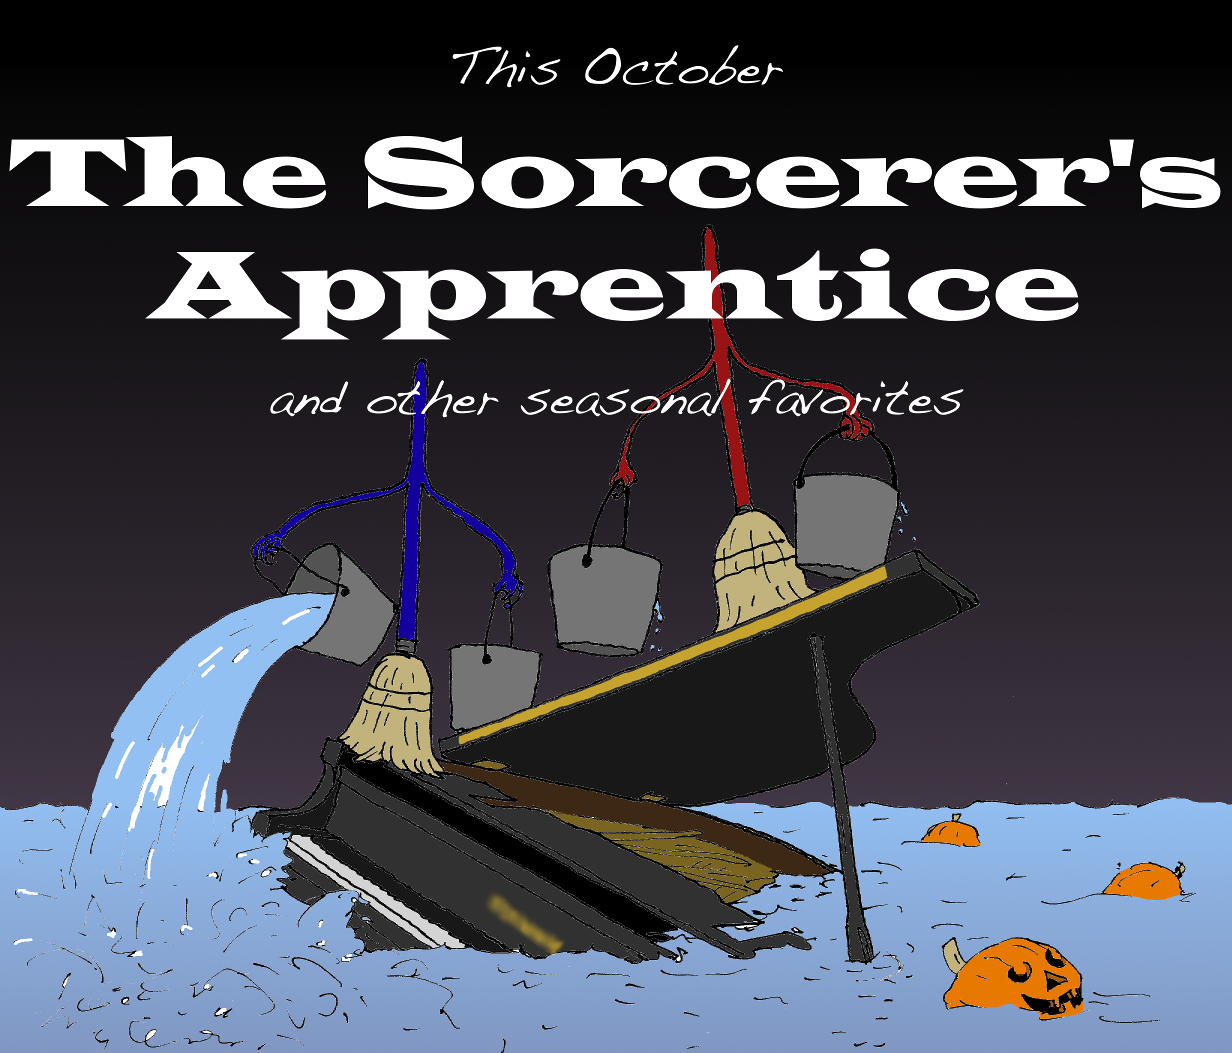 The Sorcerer's Apprentice, and Other Seasonal Favorites